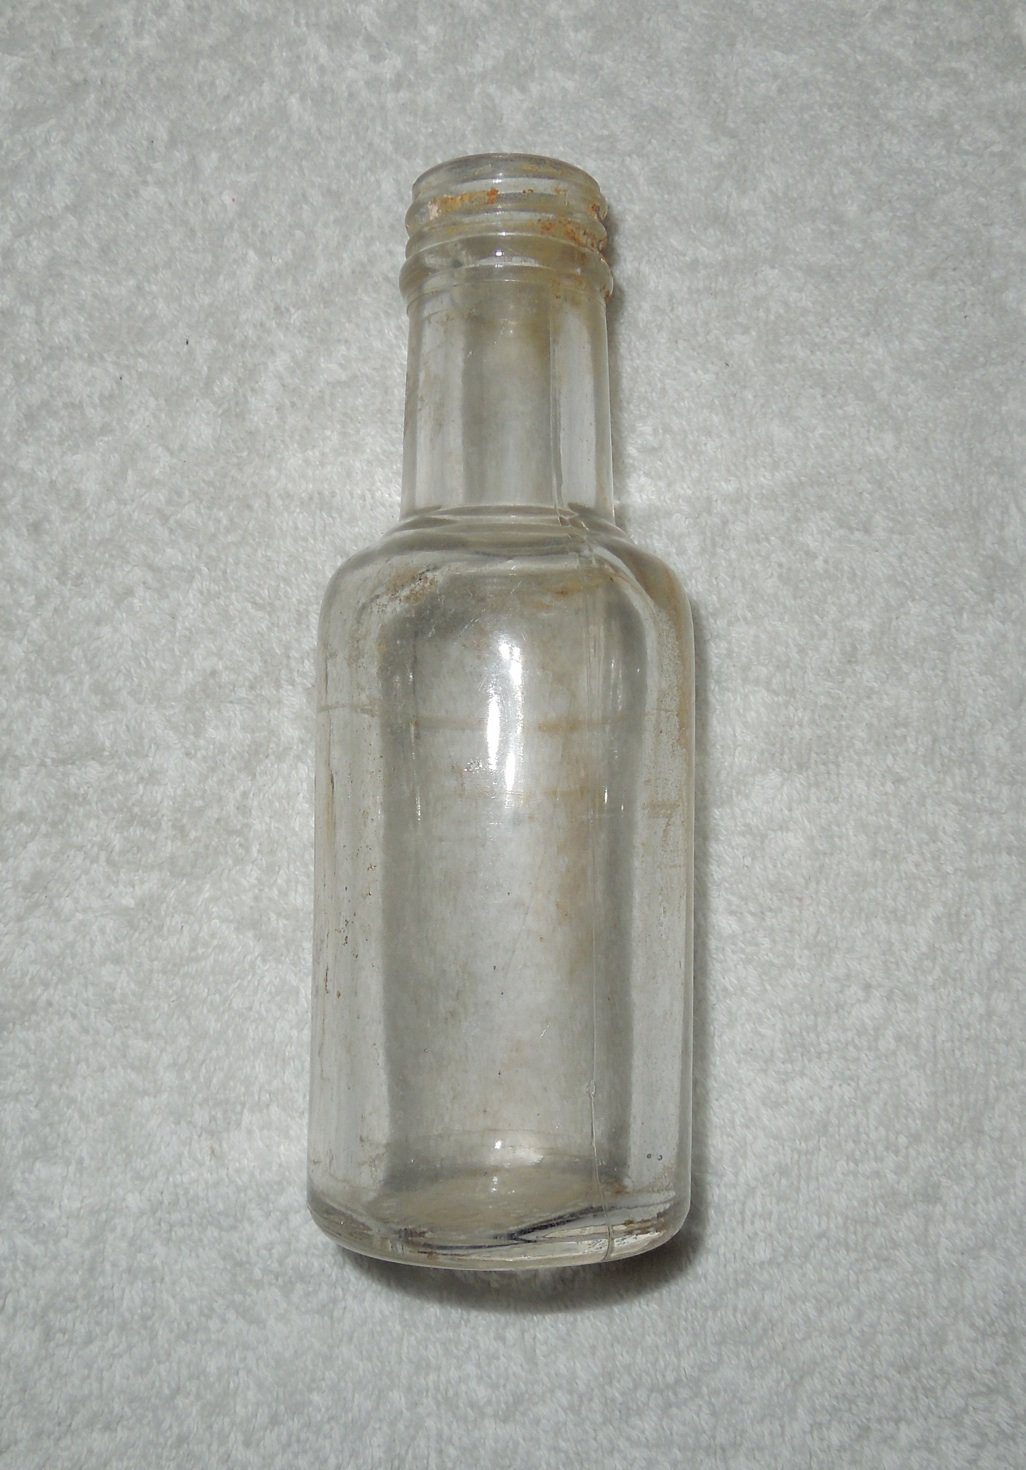 Tournades Kitchen Bouquet - Empty Clear Glass Bottle - Lid Missing - Needs To Be Cleaned